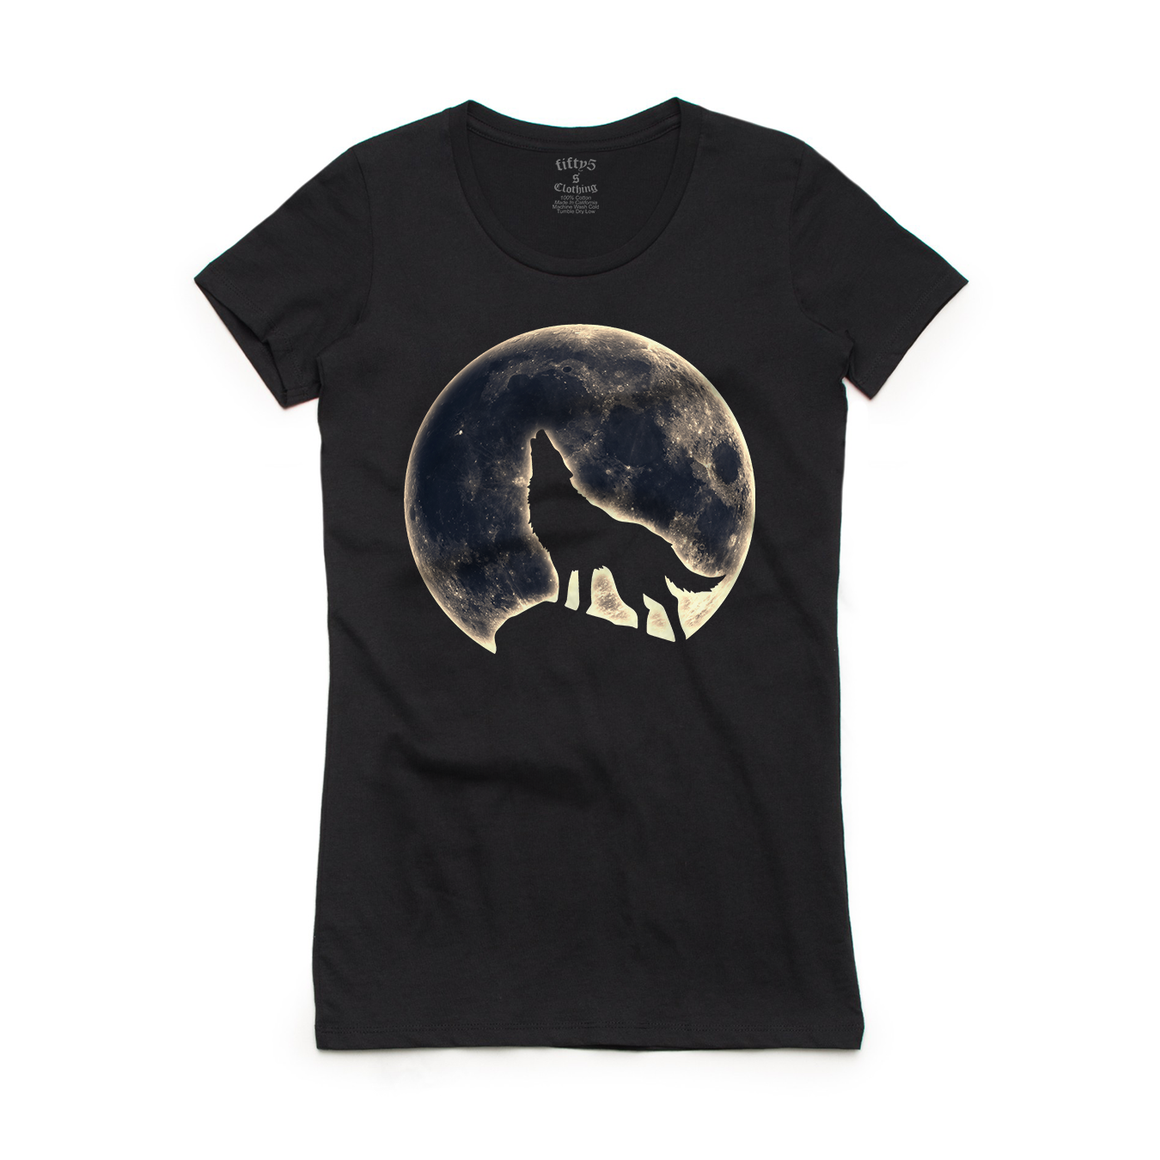 Fifty5 Clothing Howl At The Moon Women's Crew Neck T-Shirt